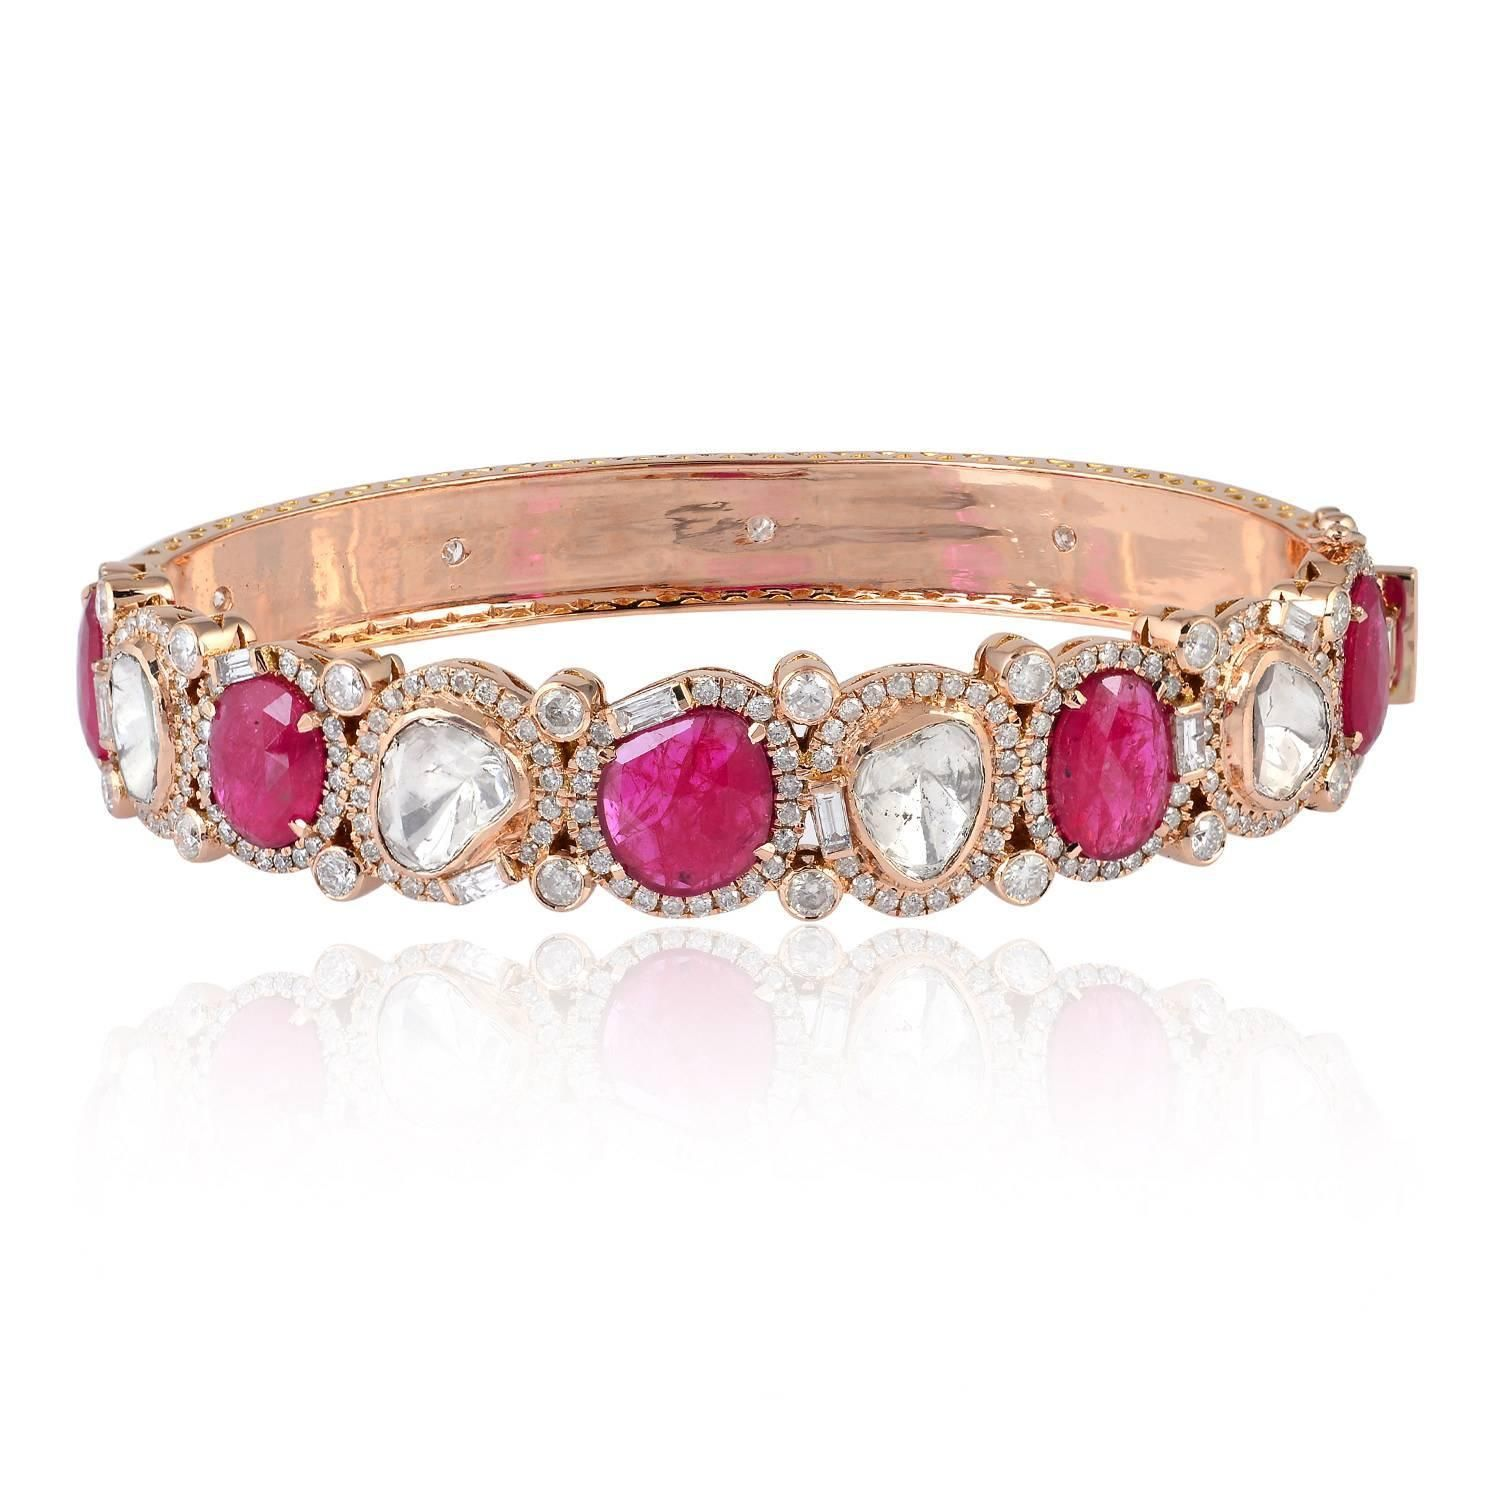 oval diamond org gold id m bracelet cabochon hinged ruby real j bracelets for retro sale at jewelry